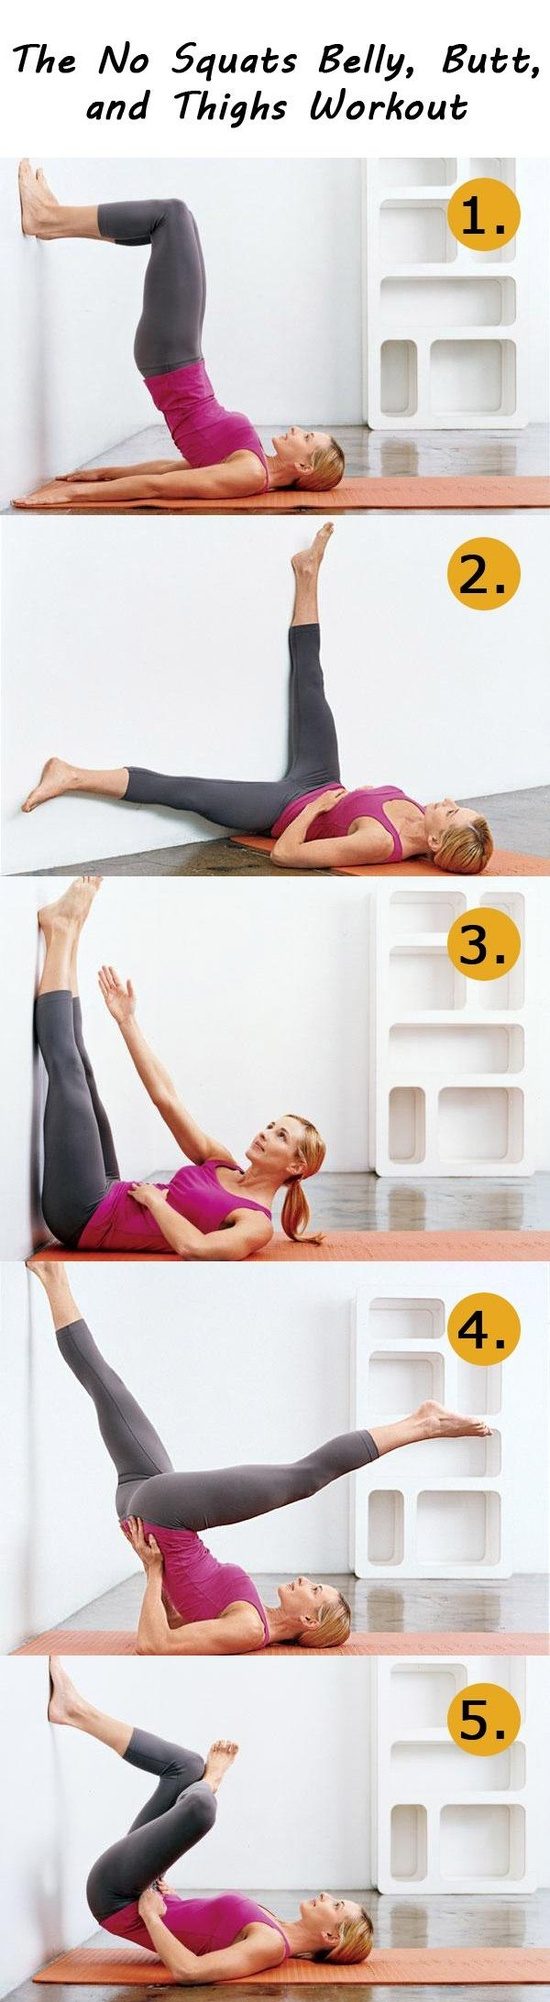 belly, butt and thigh workout